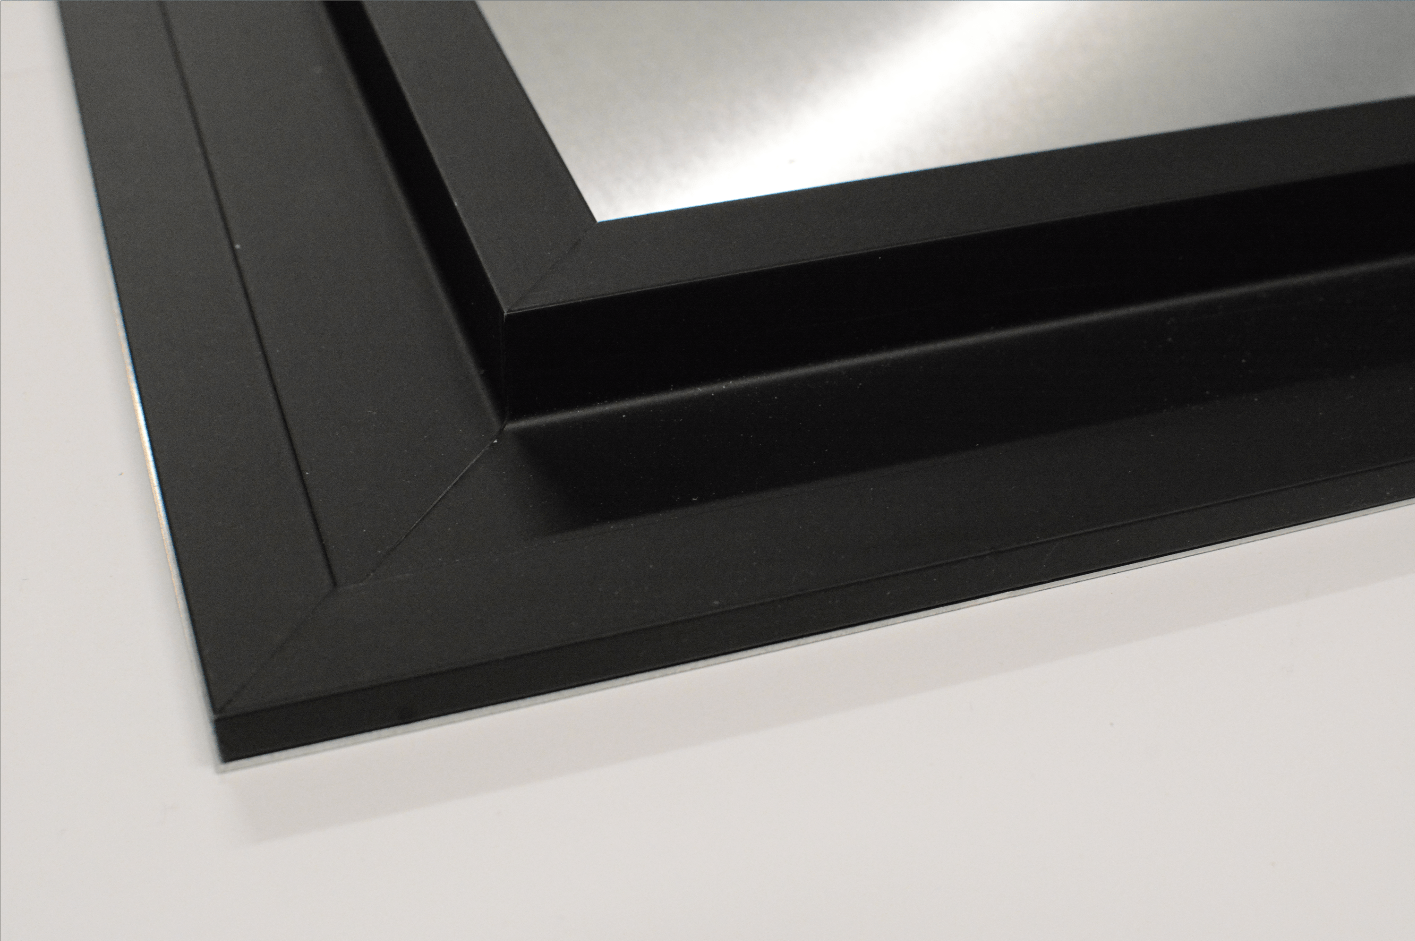 Metal prints at Prolab Digital feature a built-in, cleat-style fixture for easy mounting and attachments